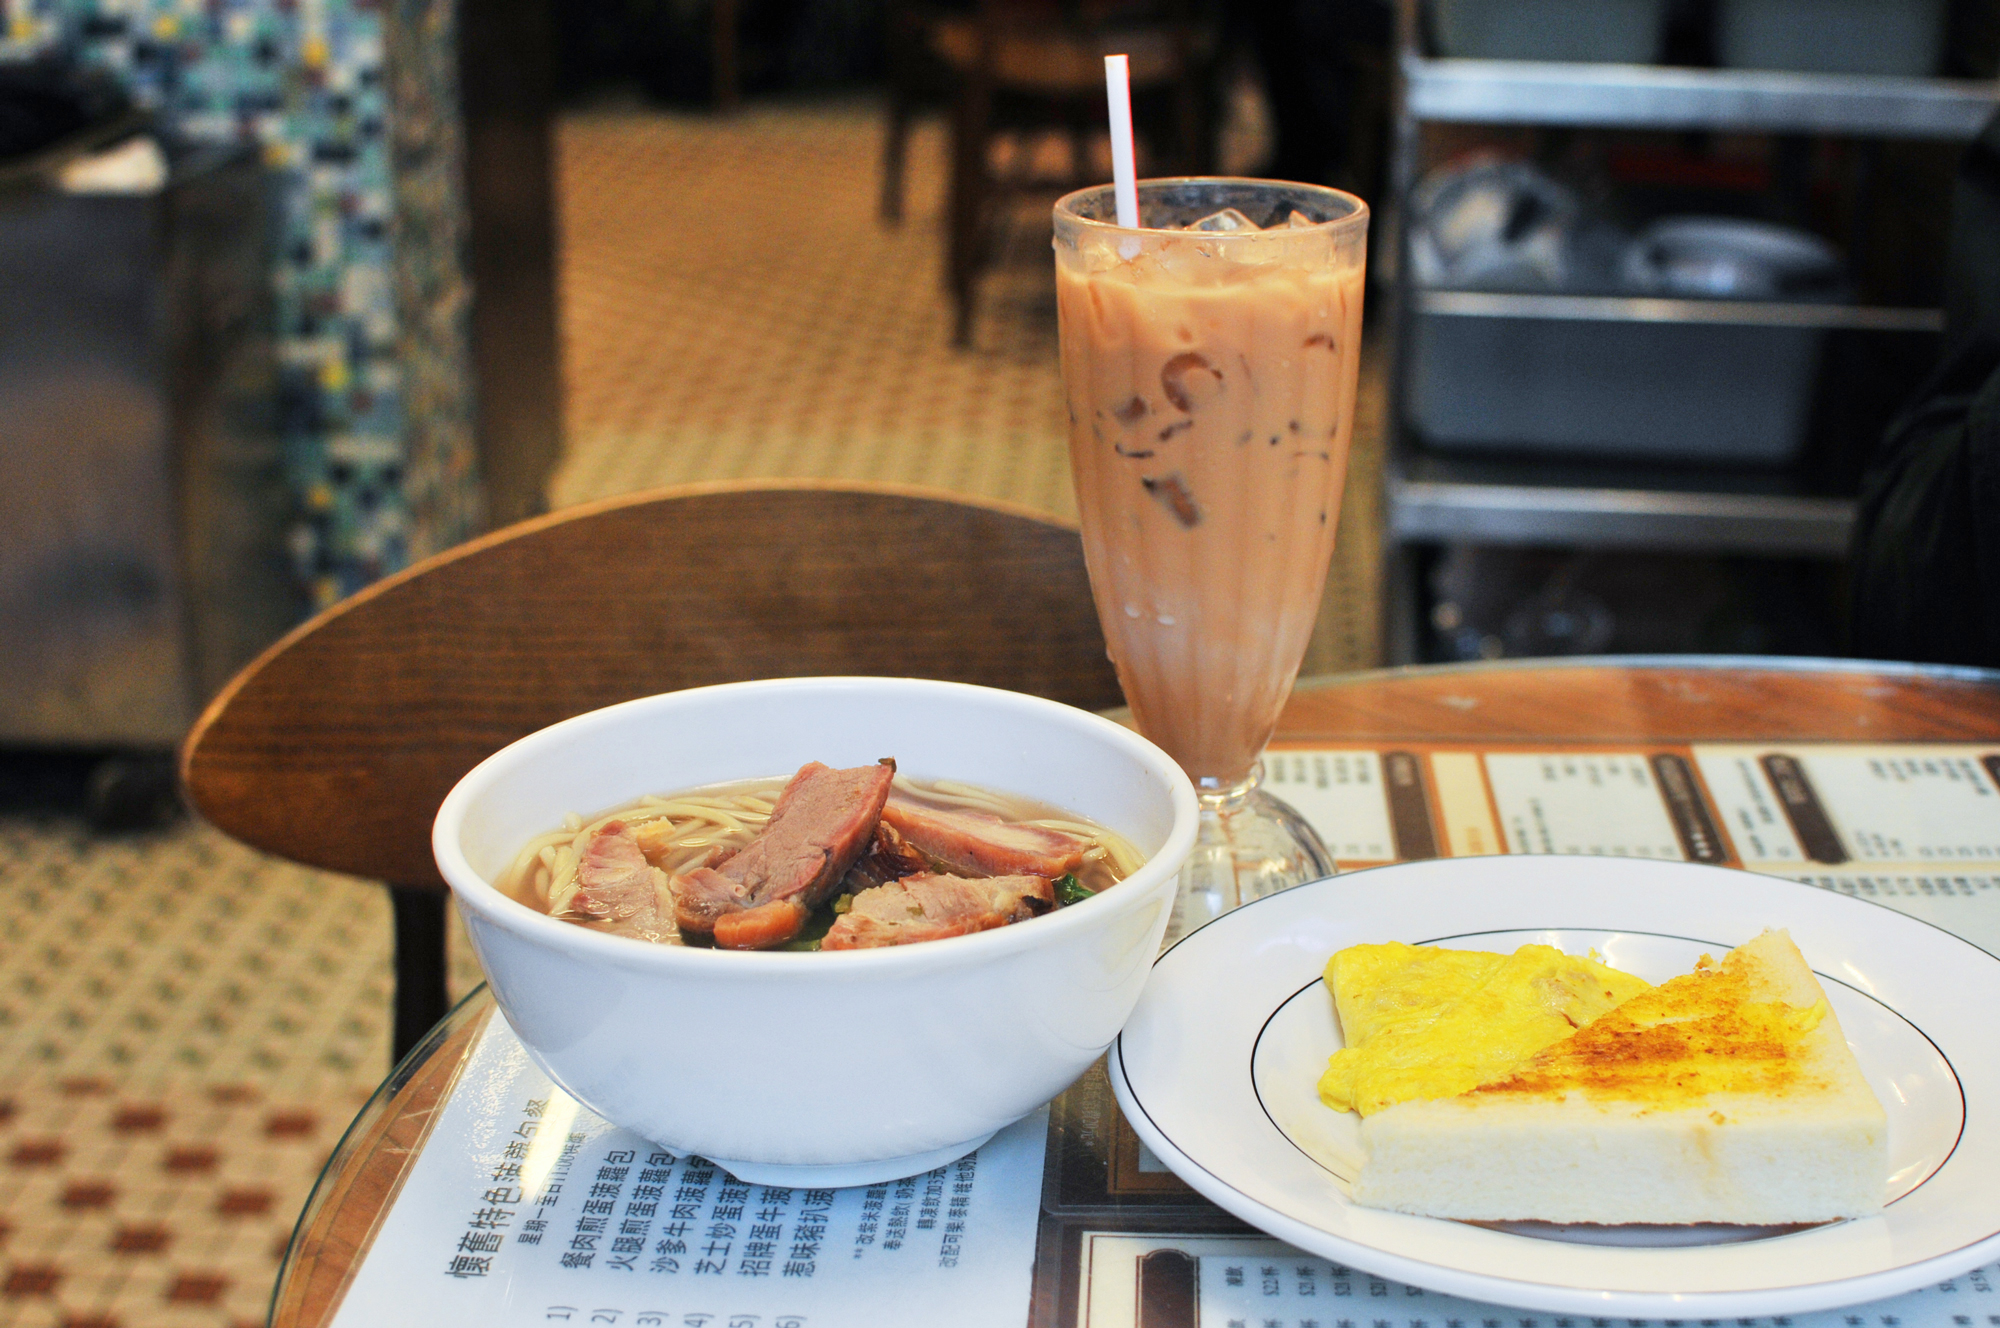 2017 guide to hong kong's food & drink scene | i'd rather be